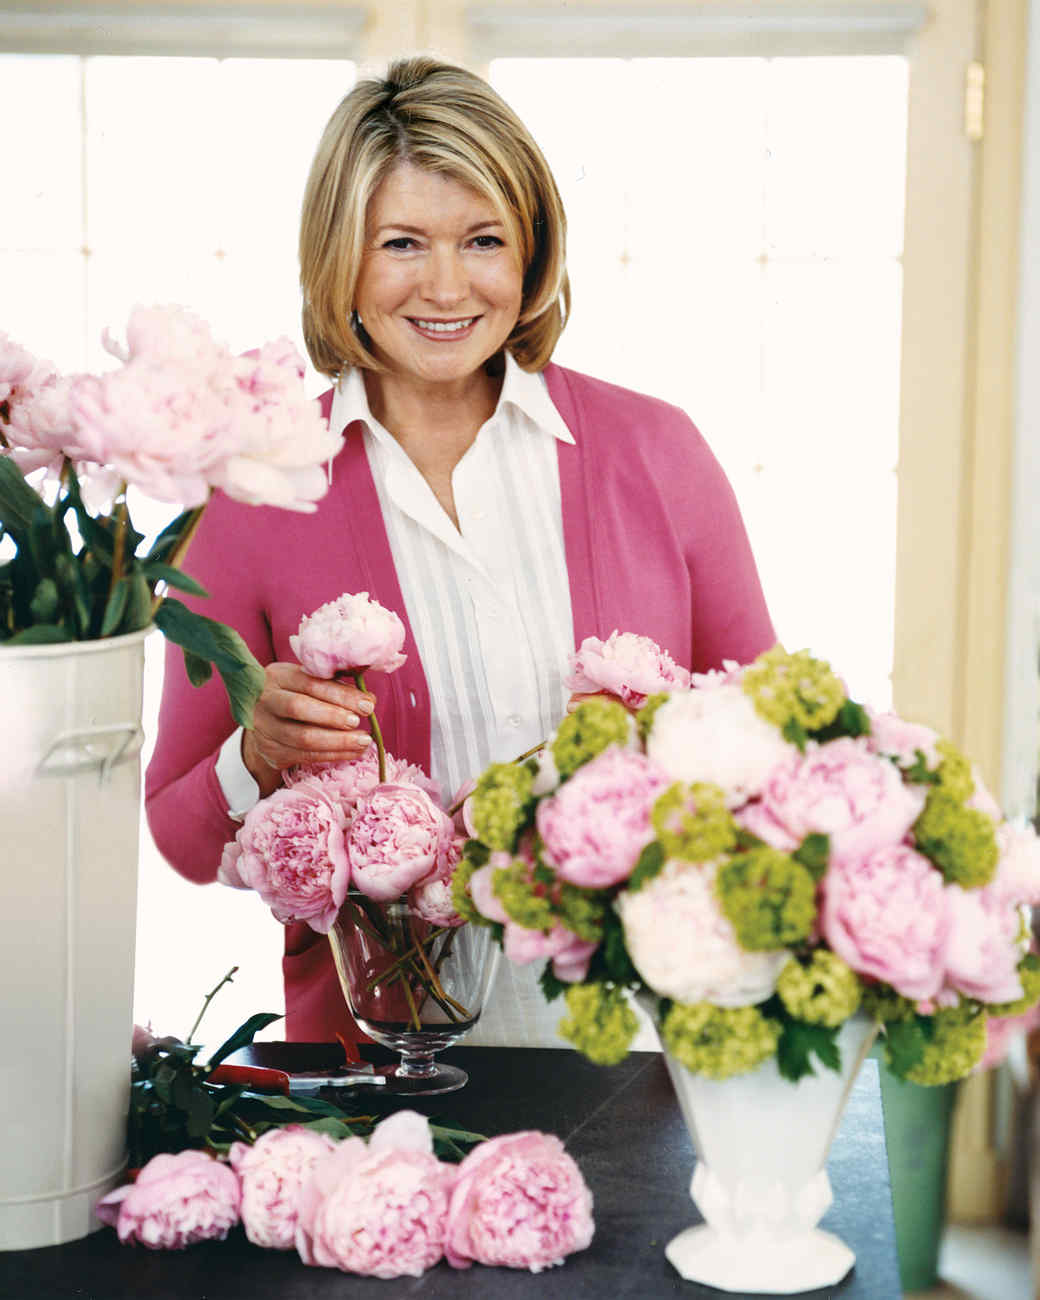 how to cut peonies for flower arrangements